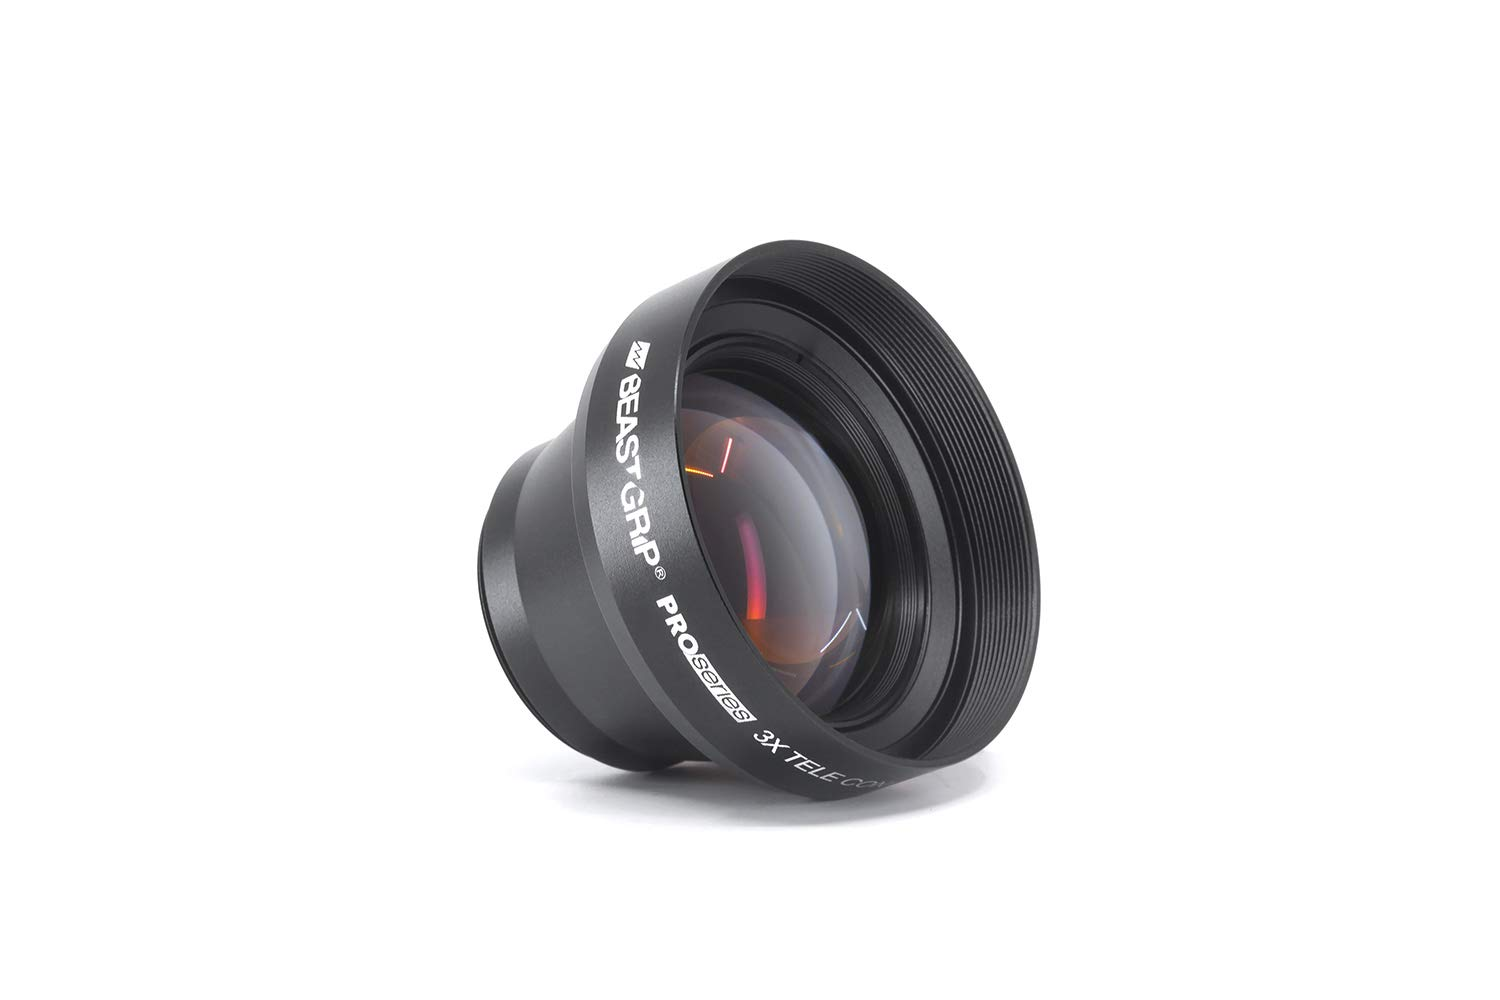 Beastgrip - Pro Series 3X Telephoto Lens for iPhone by Beastgrip